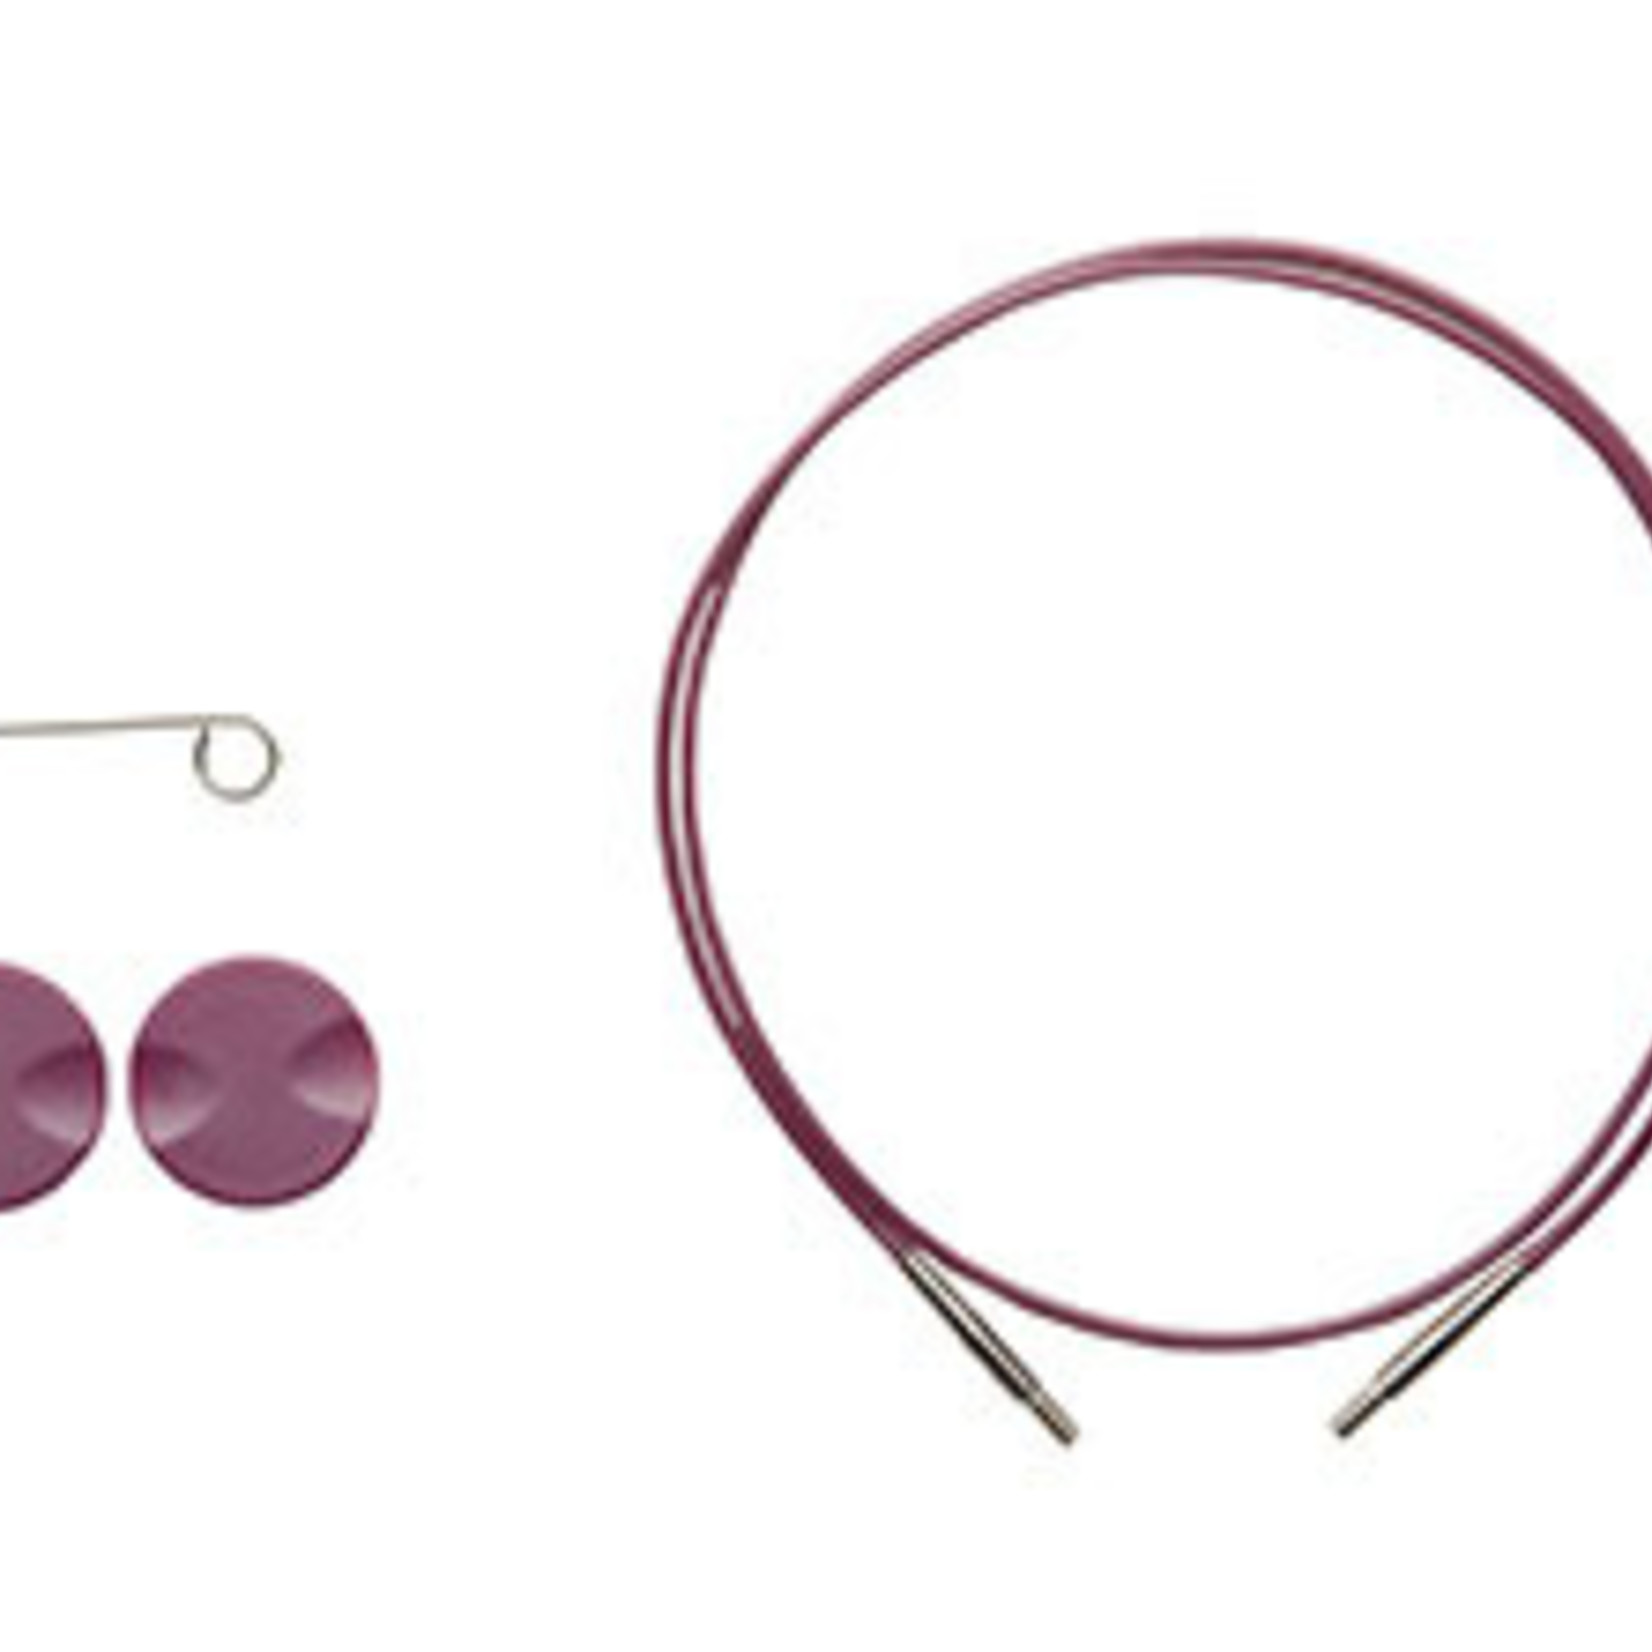 Knit Picks KNIT PICKS Interchangeable Circular Knitting Needle Cables